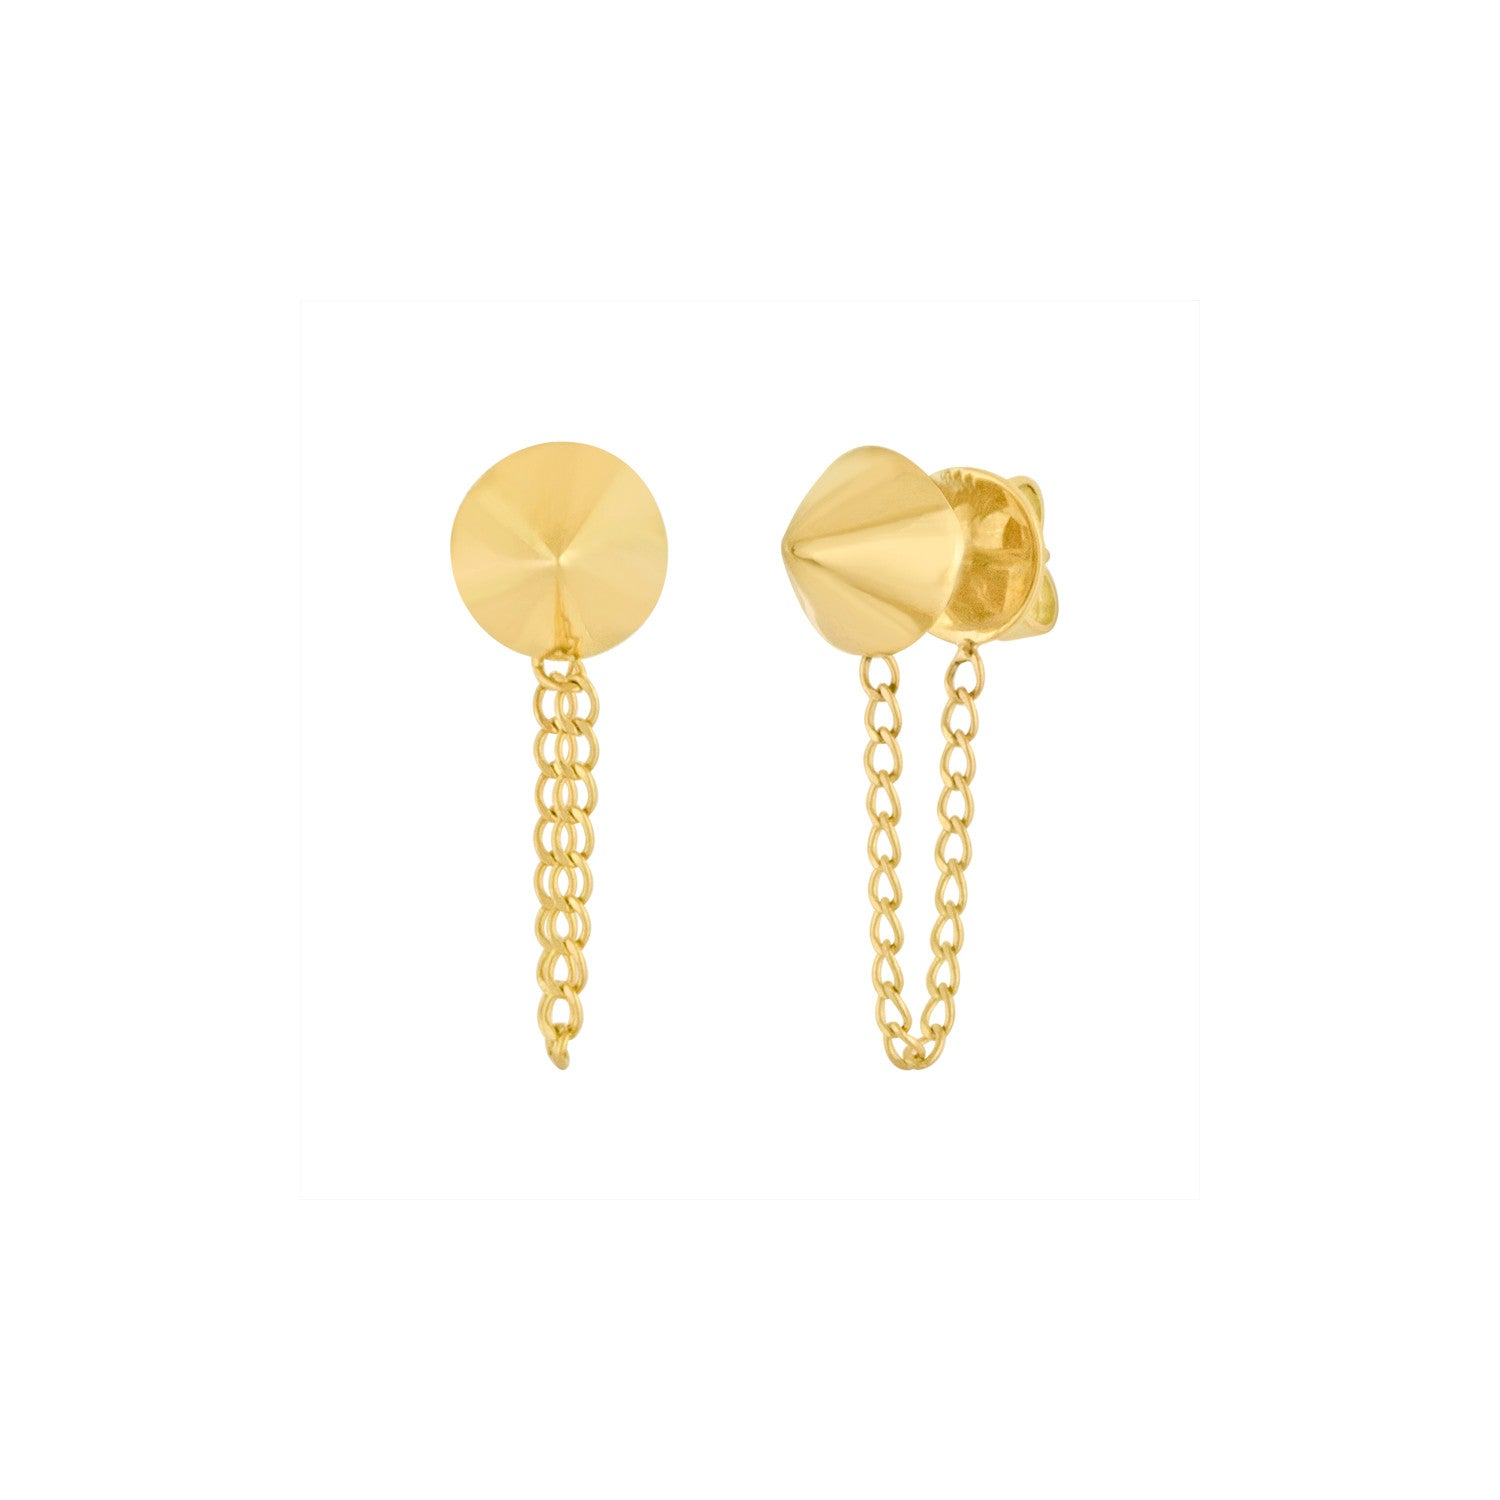 Gold Cone and Chain Earrings